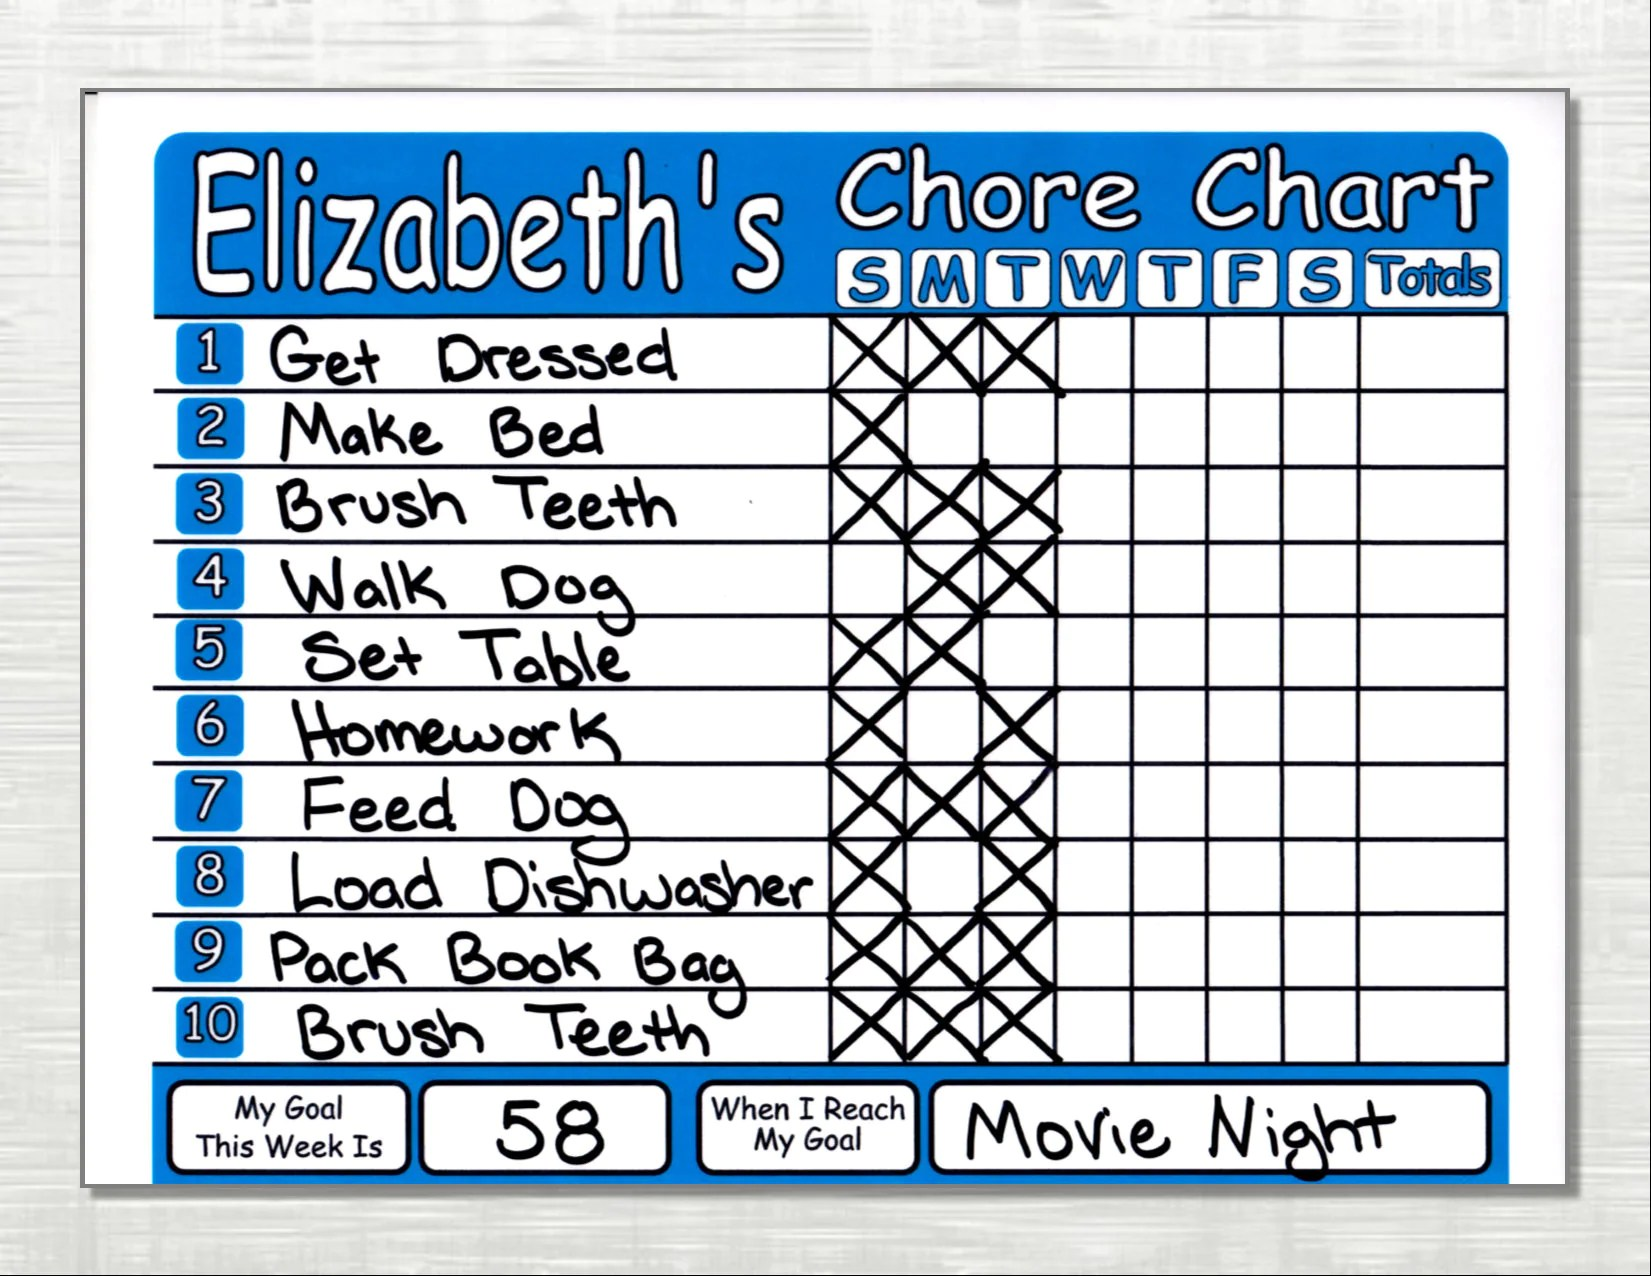 Chore Chart Shipped Works Like Dry Erase Board Set Chores